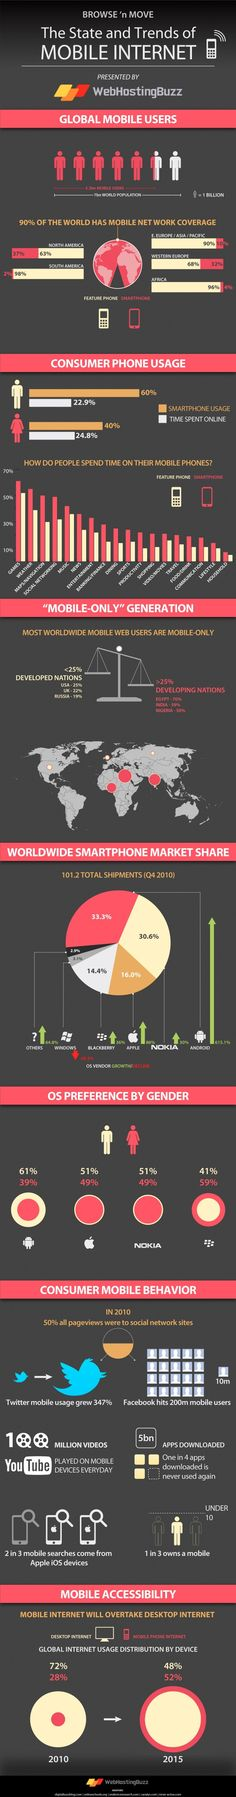 Trends in Mobile Internet